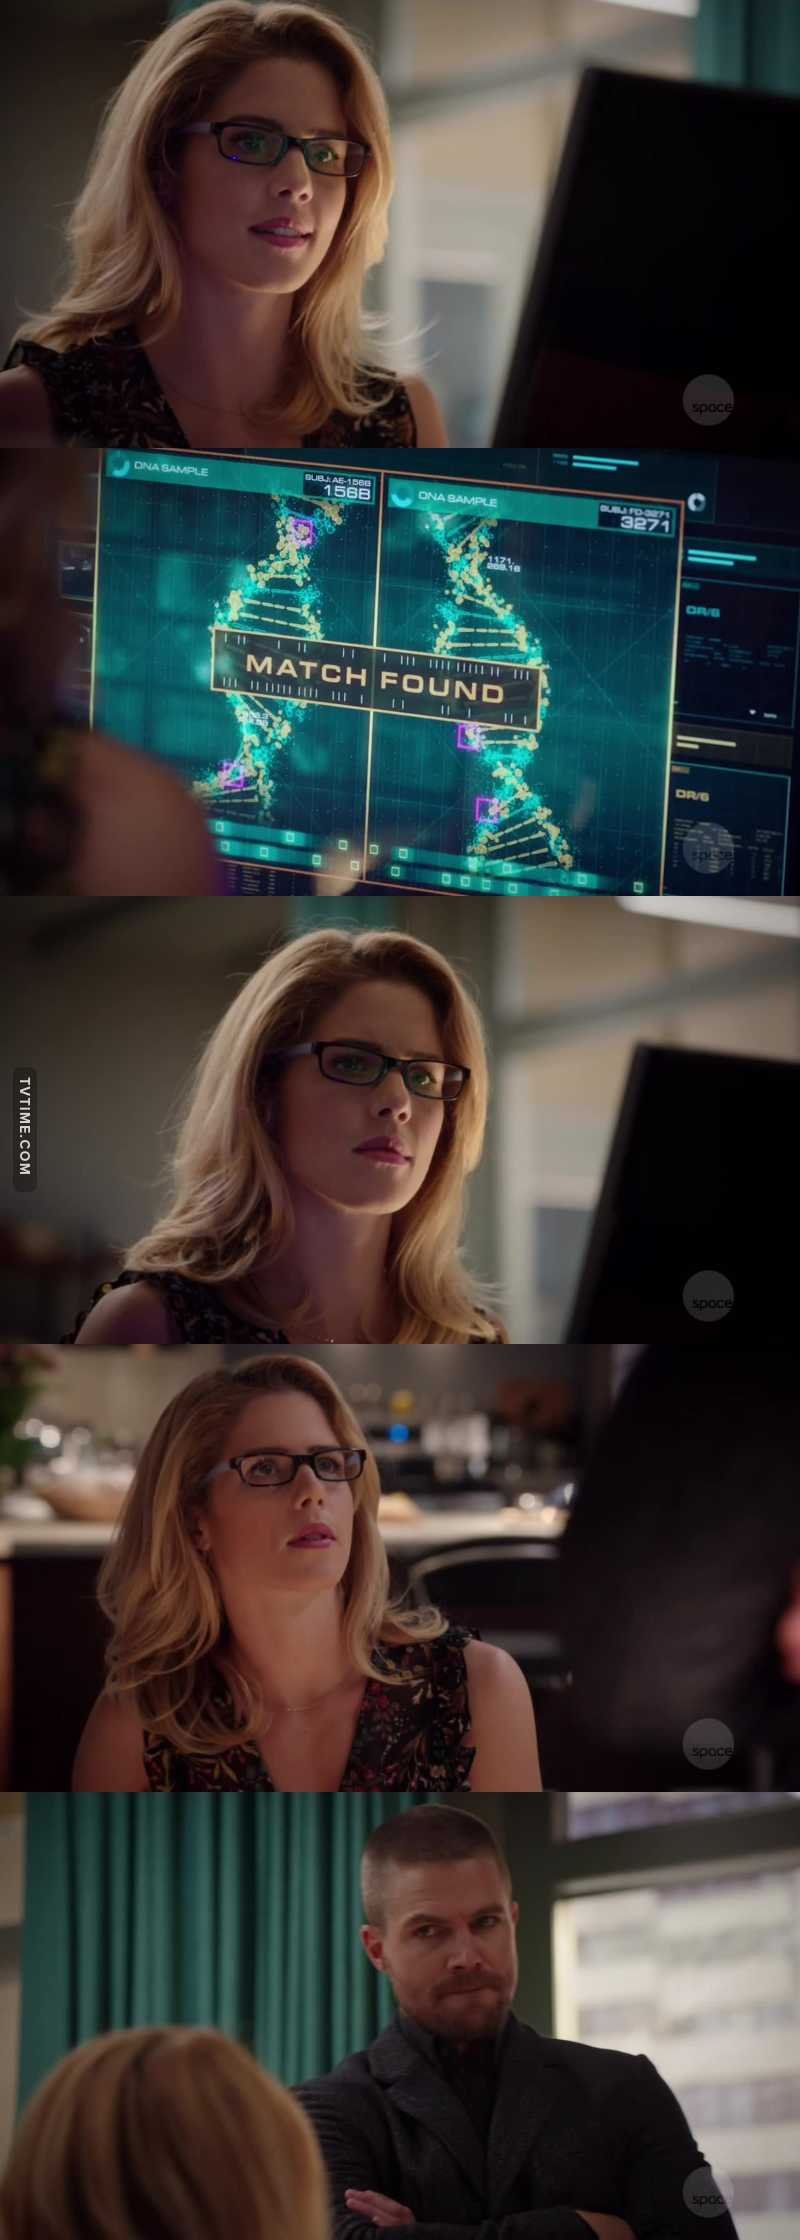 I will never be over the fact that Felicity Smoak knows Oliver Queen's DNA sequence